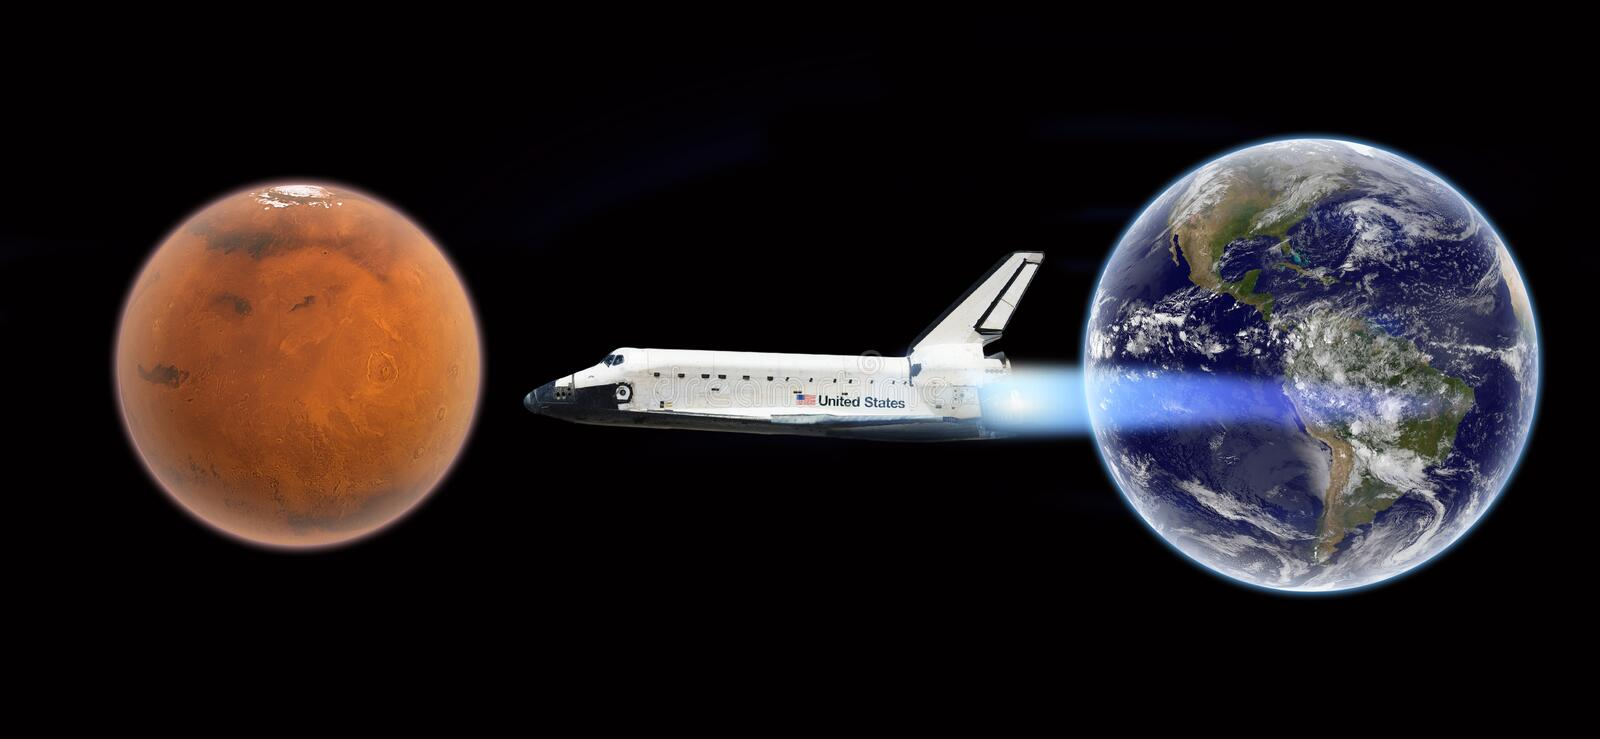 Space shuttle flight to mars - Elements of this image furnished by NASA stock photography